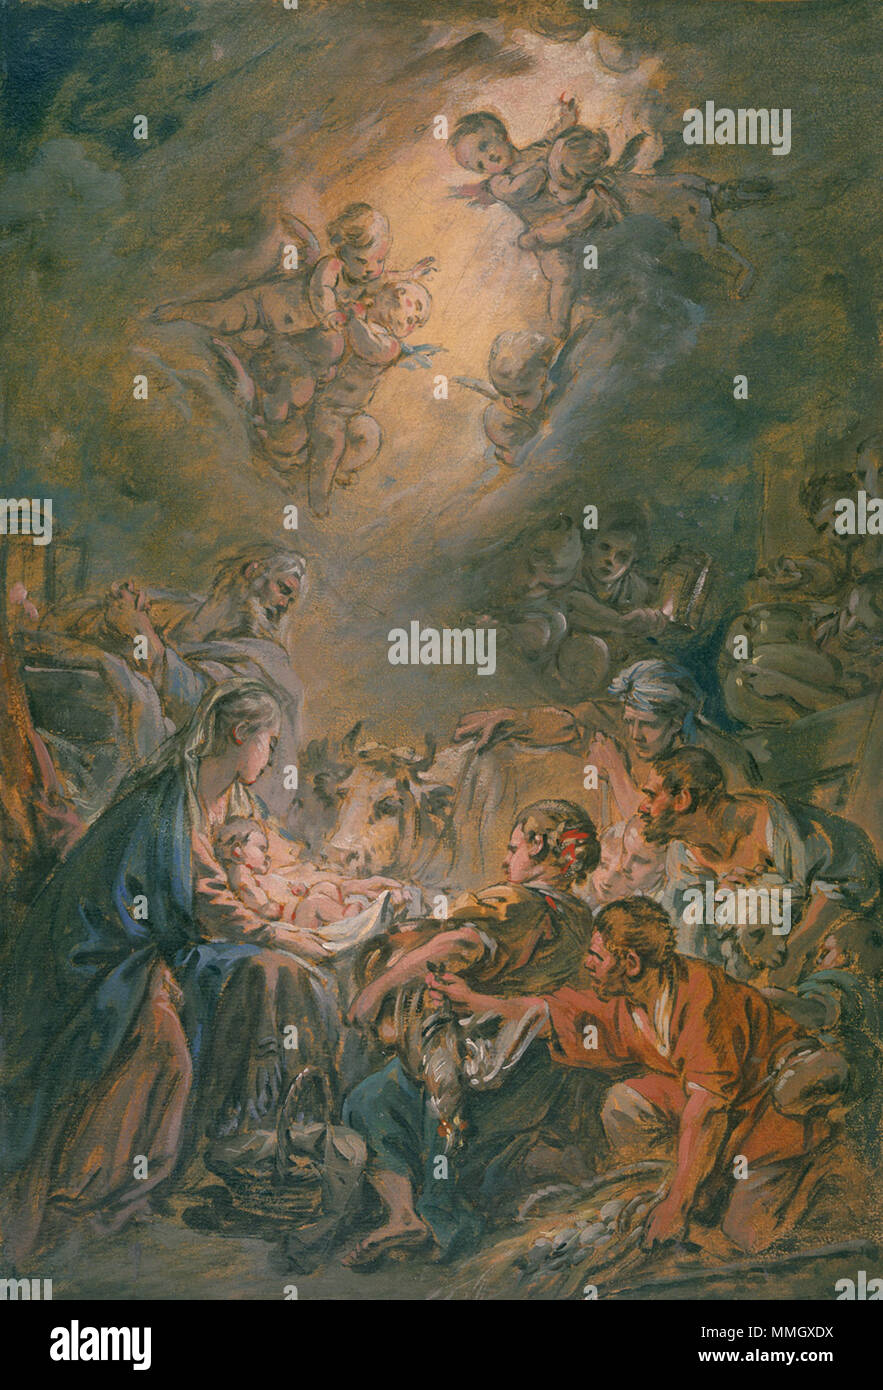 Working Title/Artist: Adoration Department: Drawings & Prints Culture/Period/Location:  HB/TOA Date Code:  Working Date: ca. 1760-70 photography by mma 1997/98, transparency #1ad scanned and retouched by film and media (jn) 8 20 03 François Boucher - The Adoration of the Shepherds - Stock Image